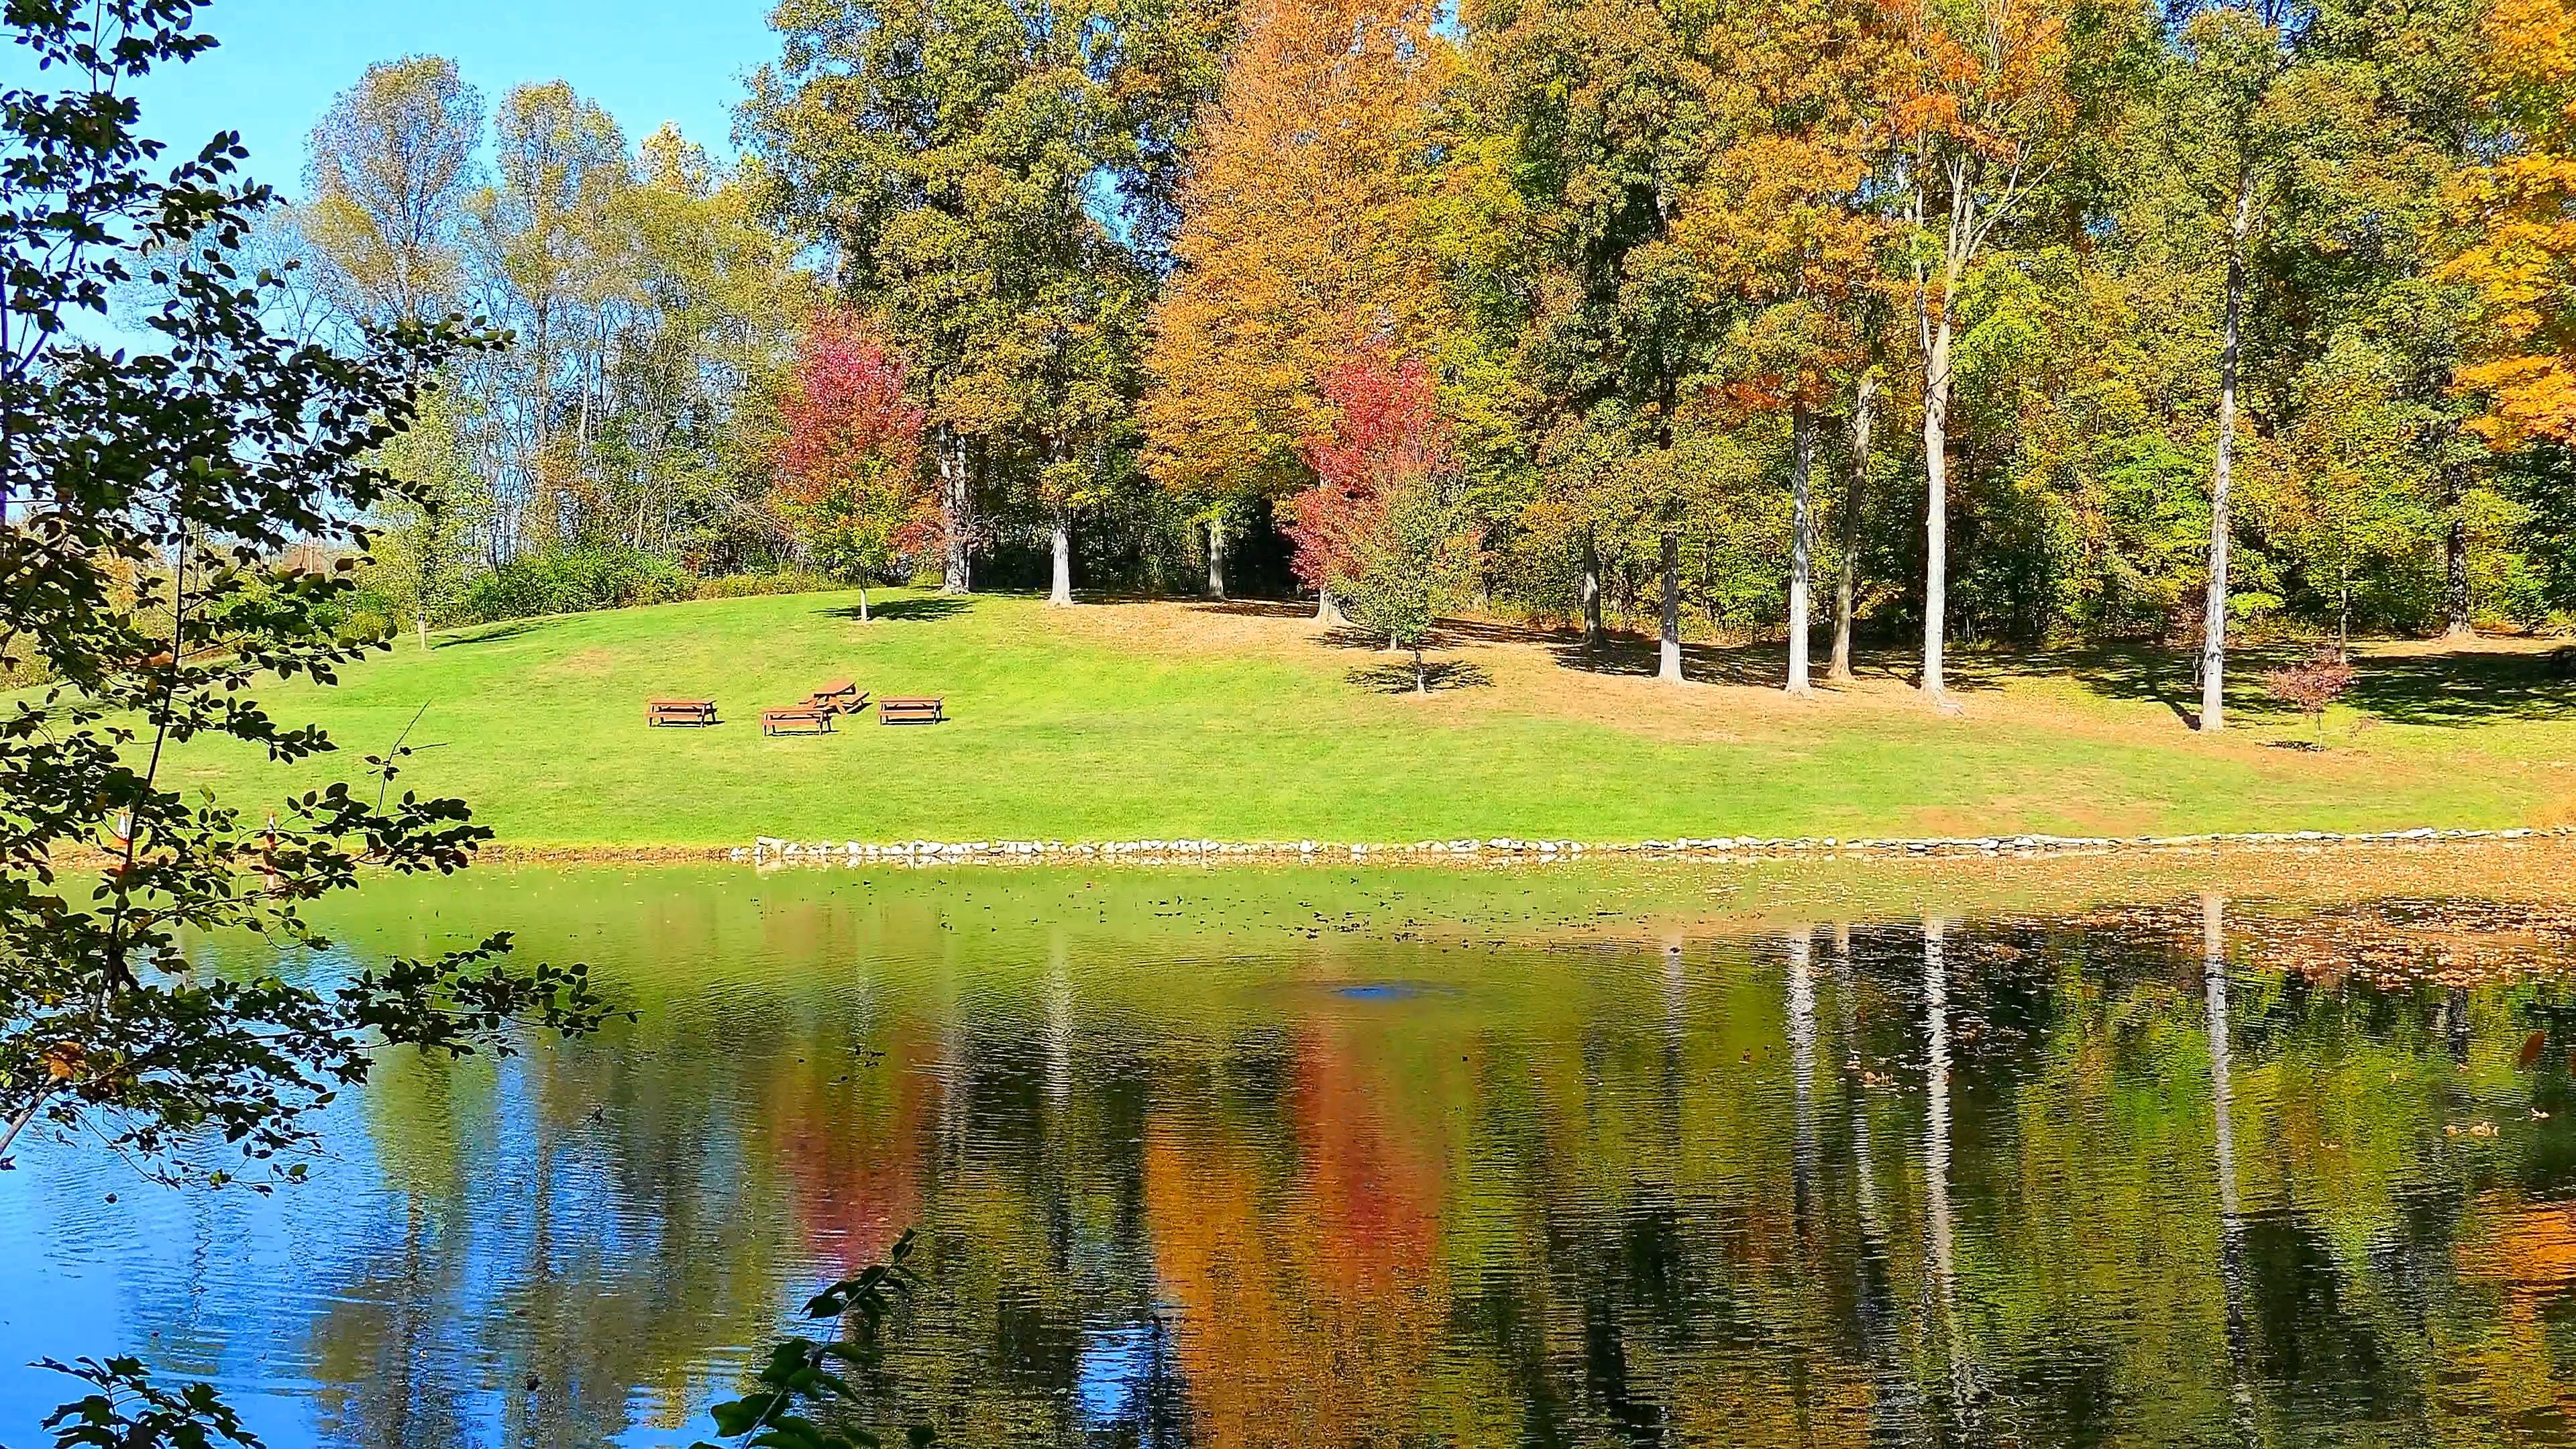 A Beautiful Park With Autumn Trees